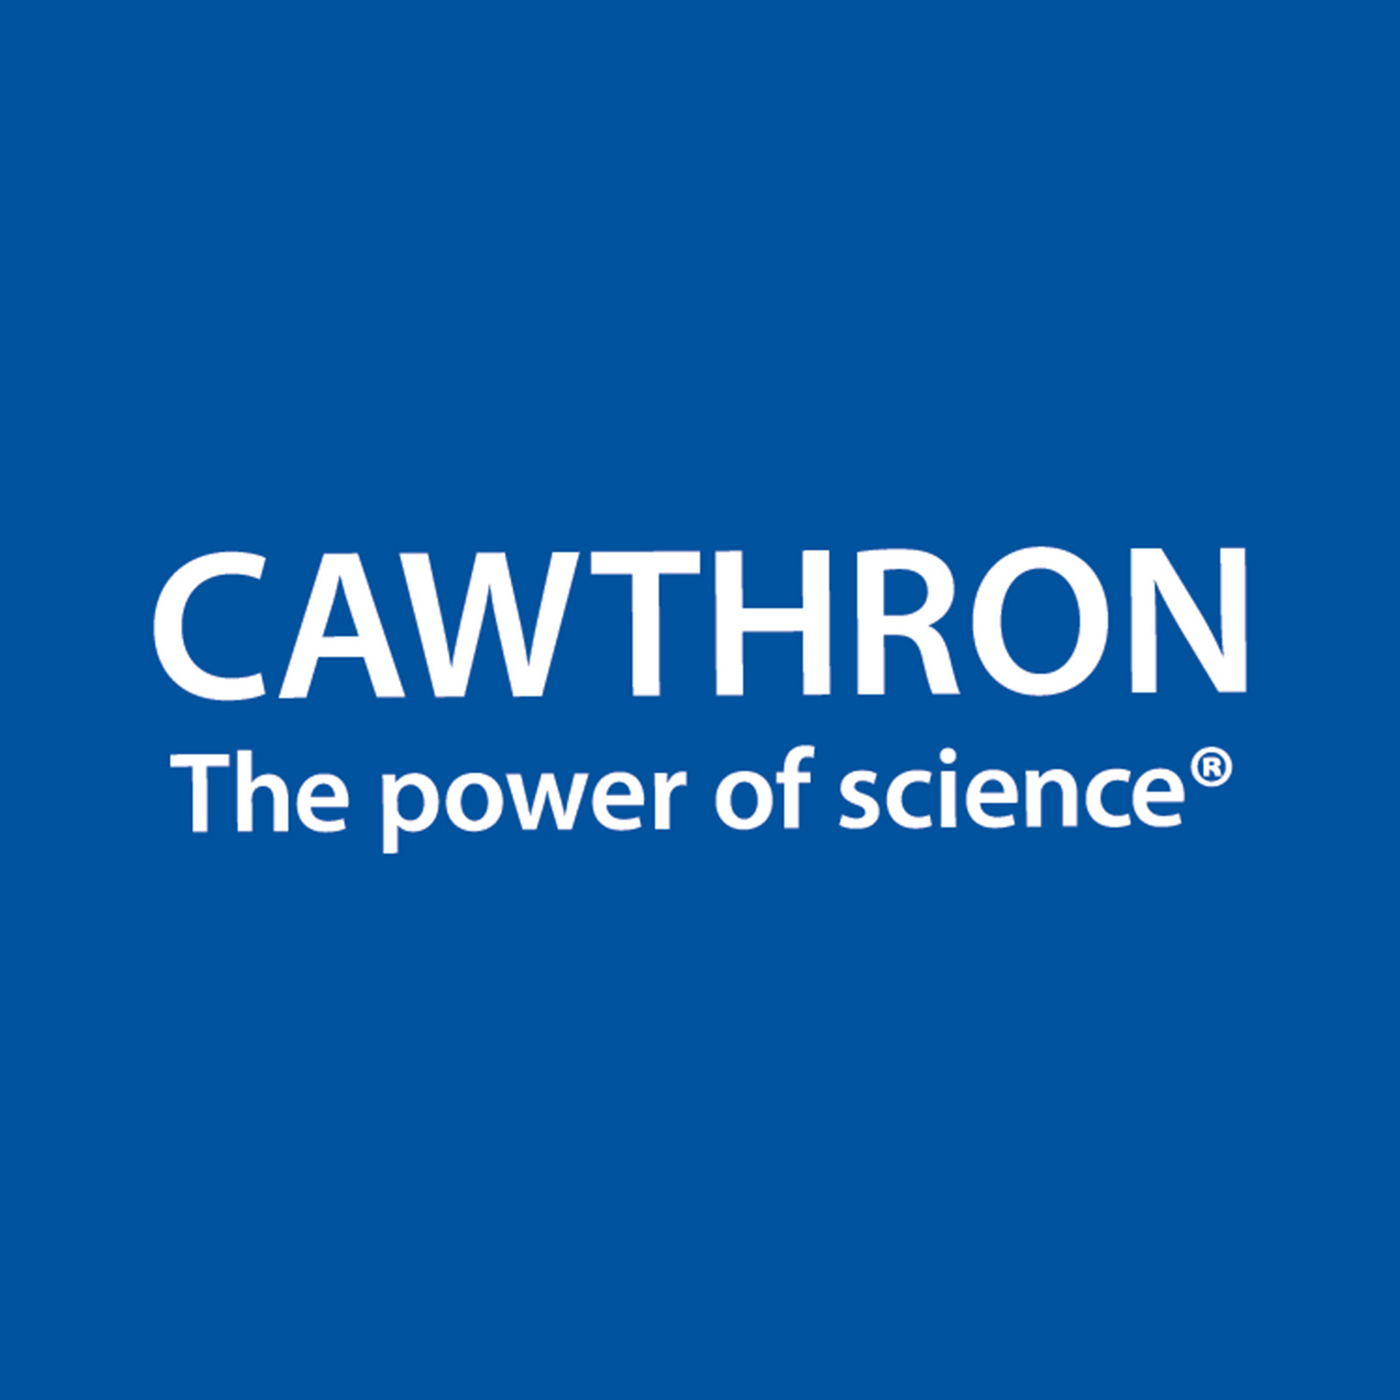 https://cdn.accessradio.org/StationFolder/freshfm/Images/cawthron-power-of-science_large.png